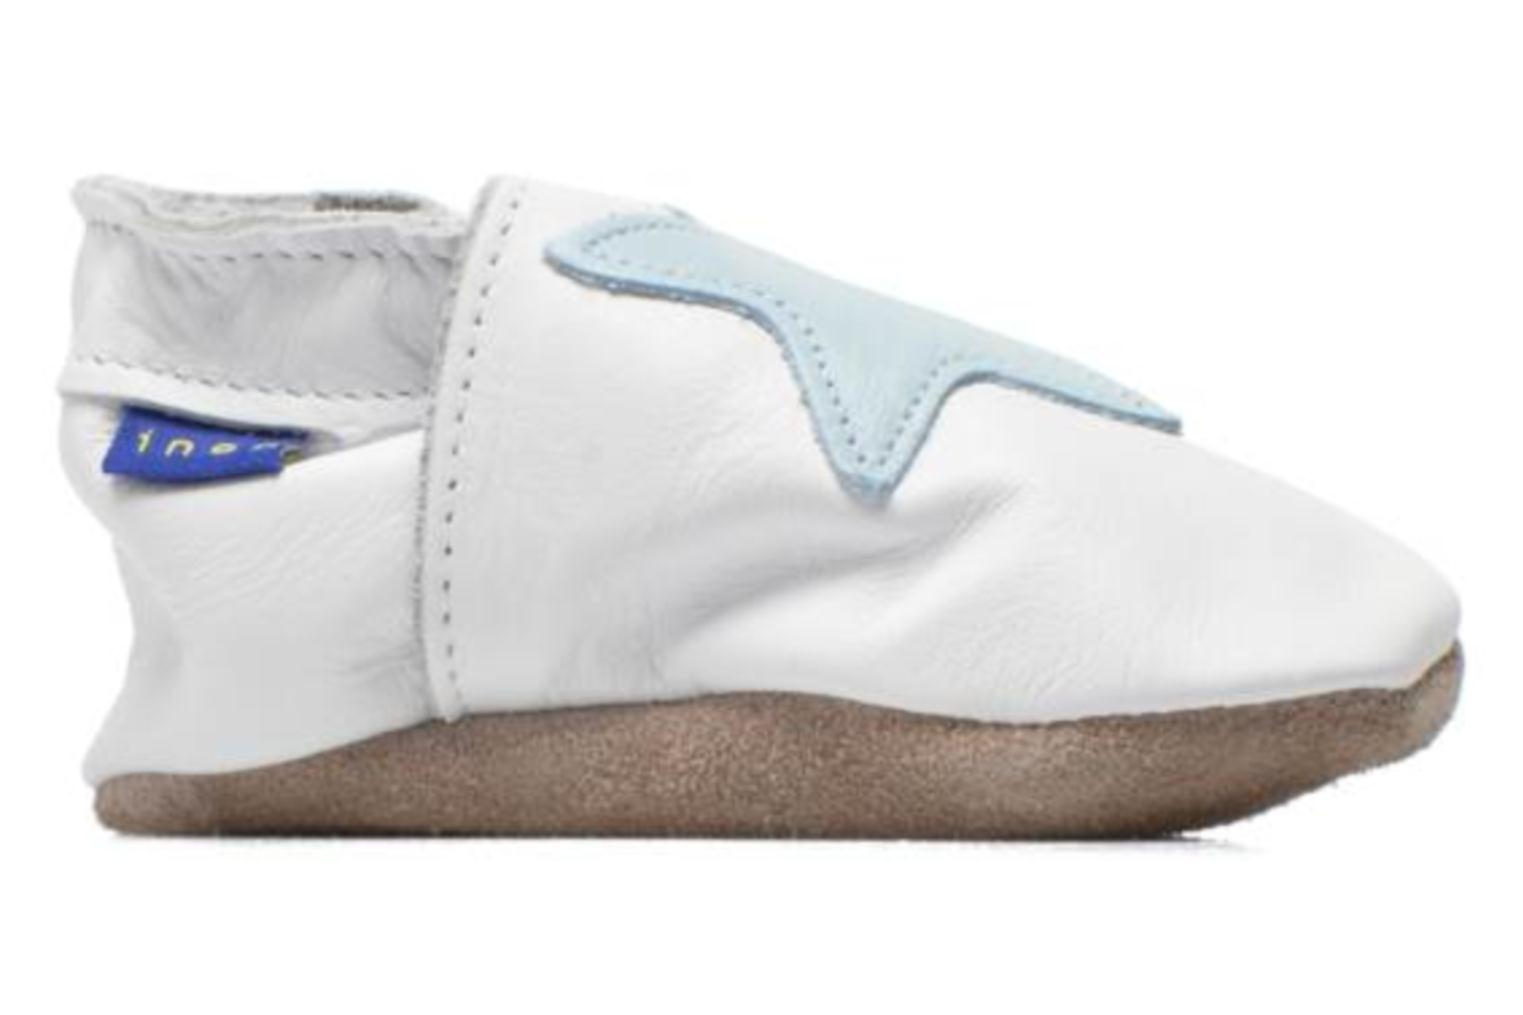 Slippers Inch Blue Star White back view